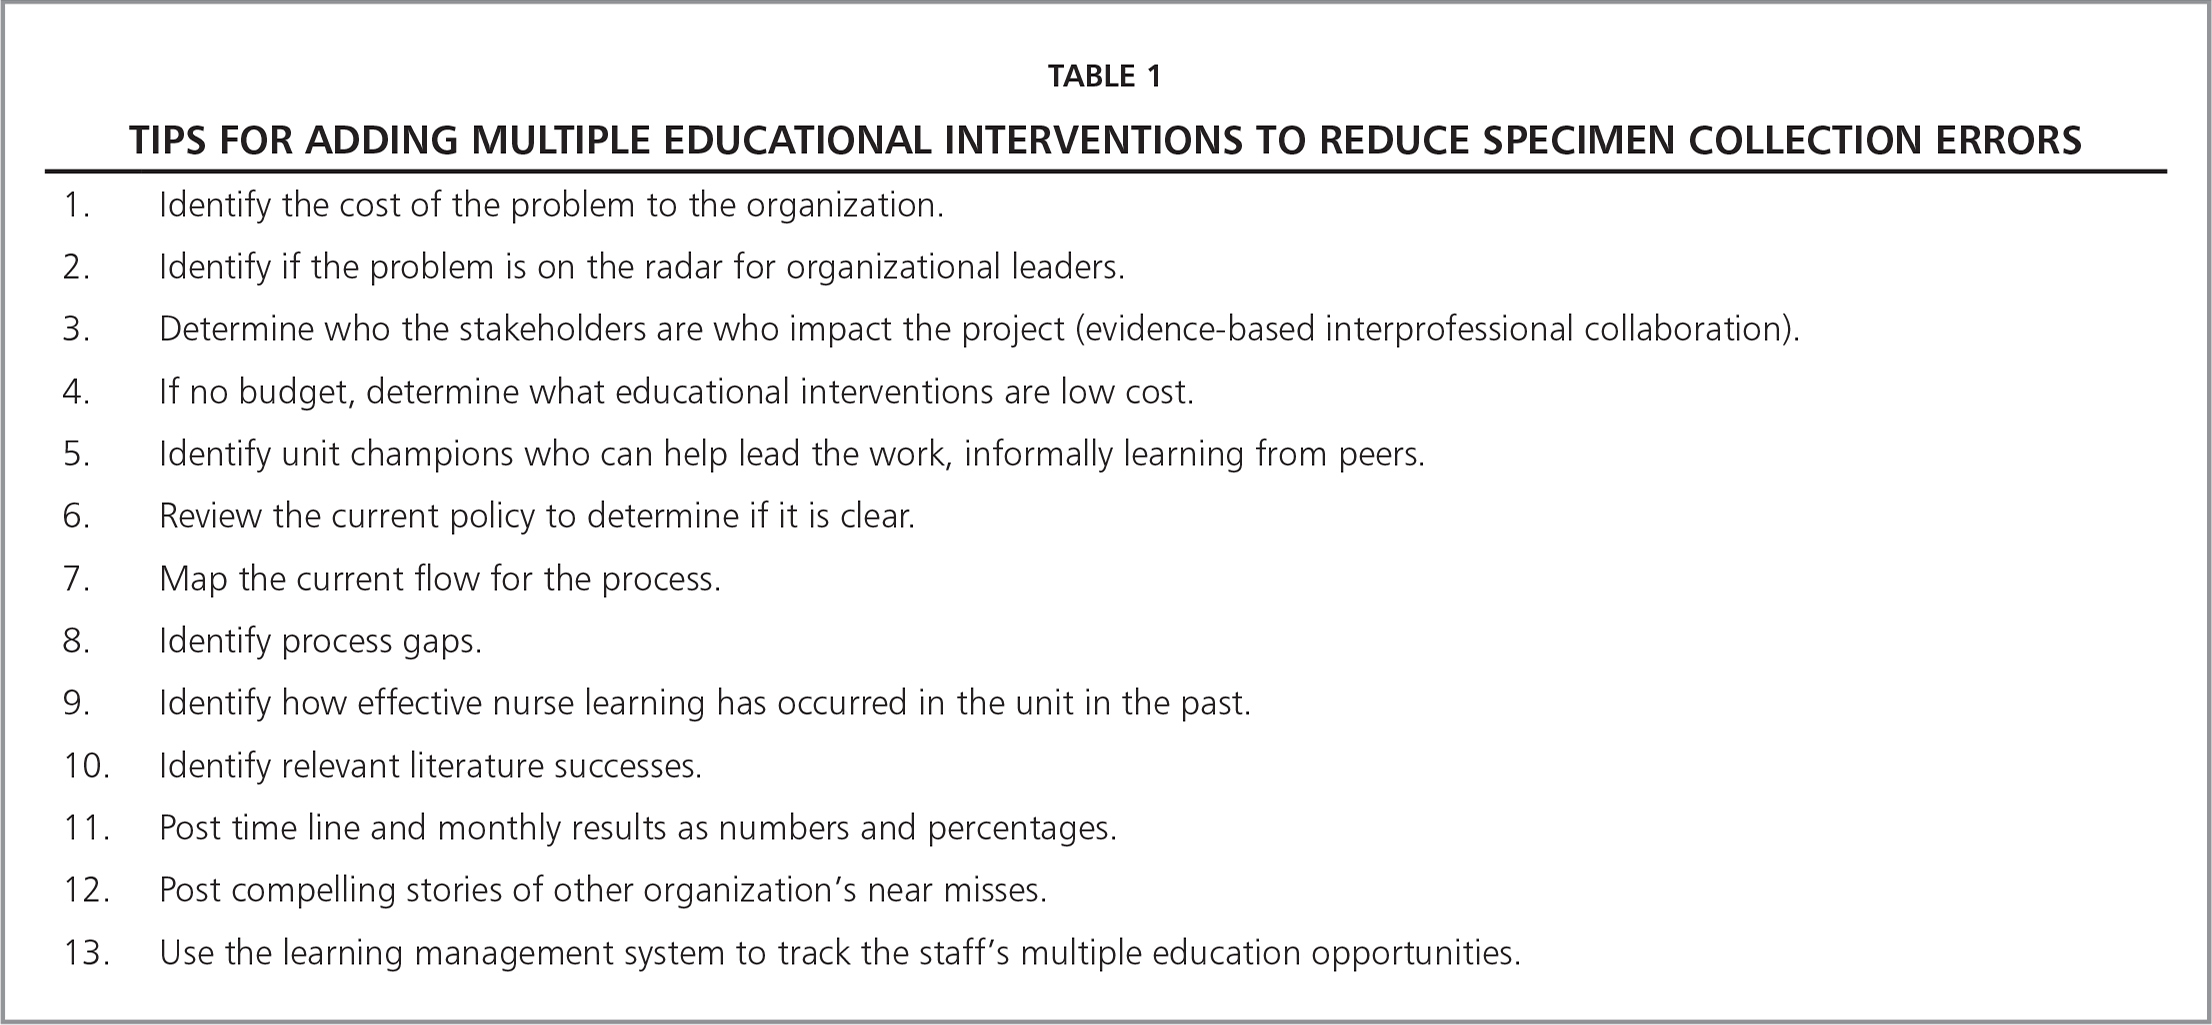 Tips for Adding Multiple Educational Interventions to Reduce Specimen Collection Errors